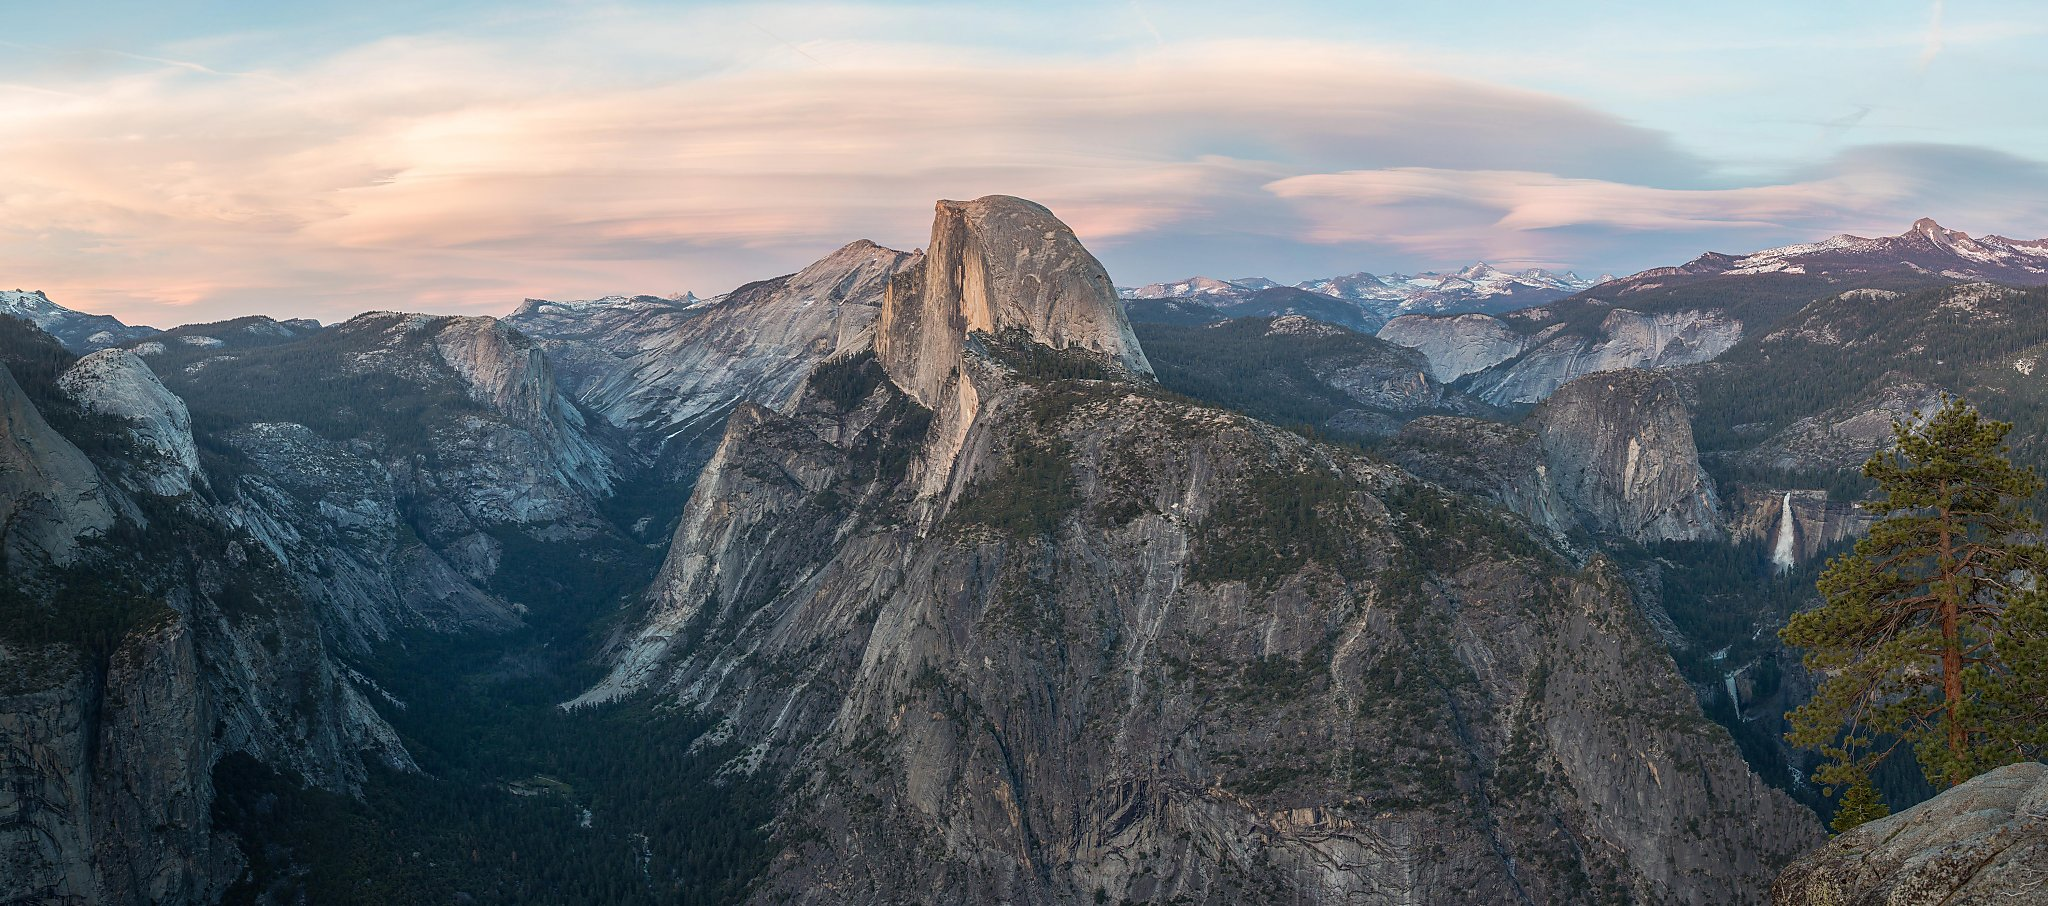 How Yosemite is solving gridlock at Glacier Point